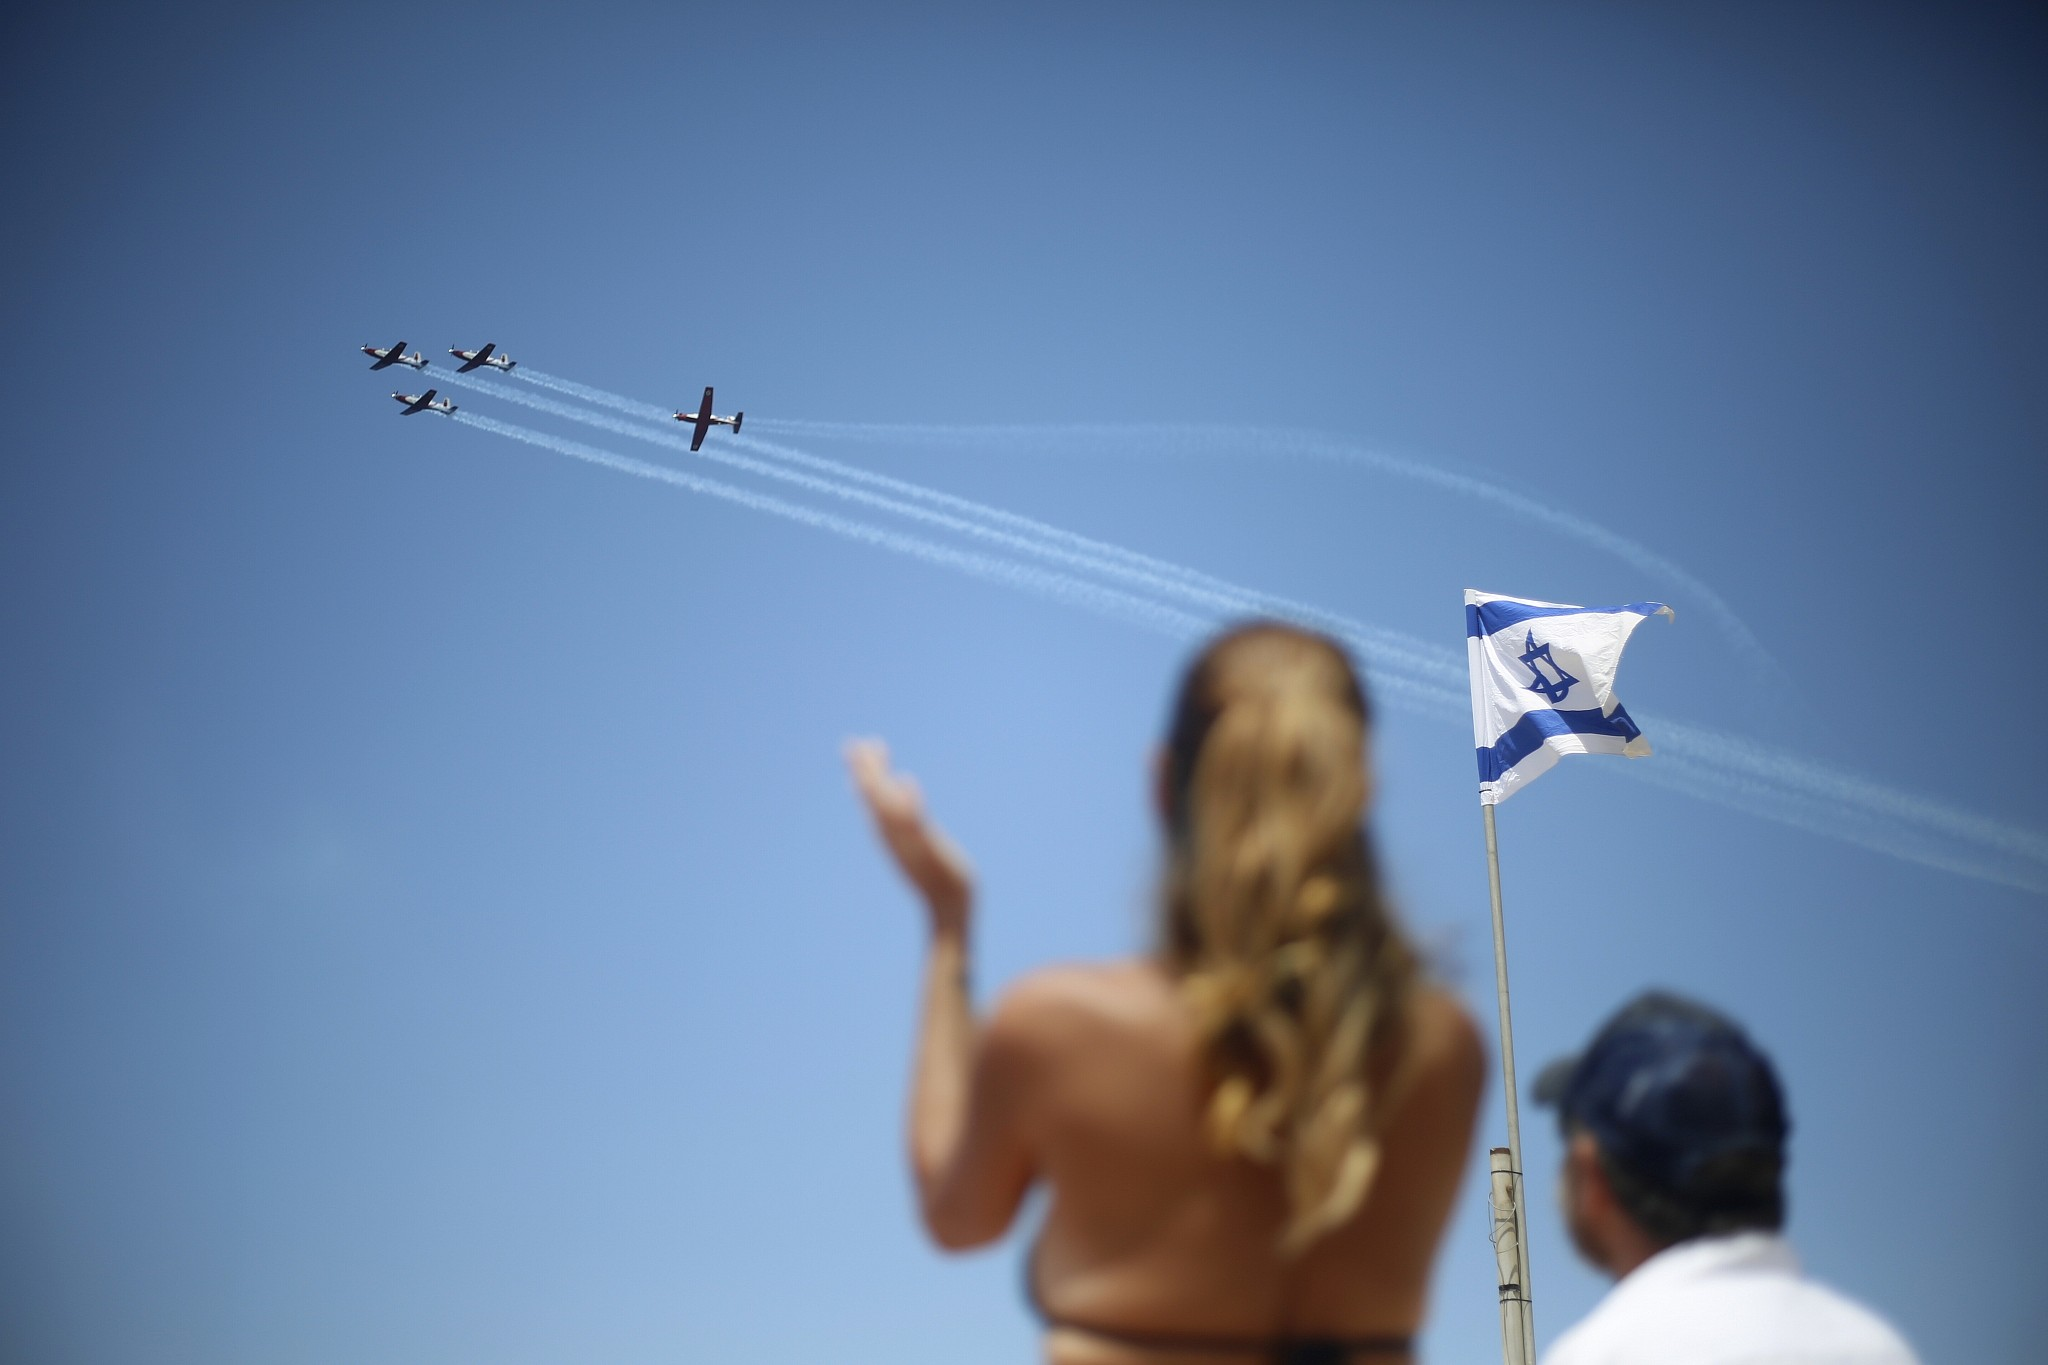 After Panic Idf Publishes Independence Day Flyby